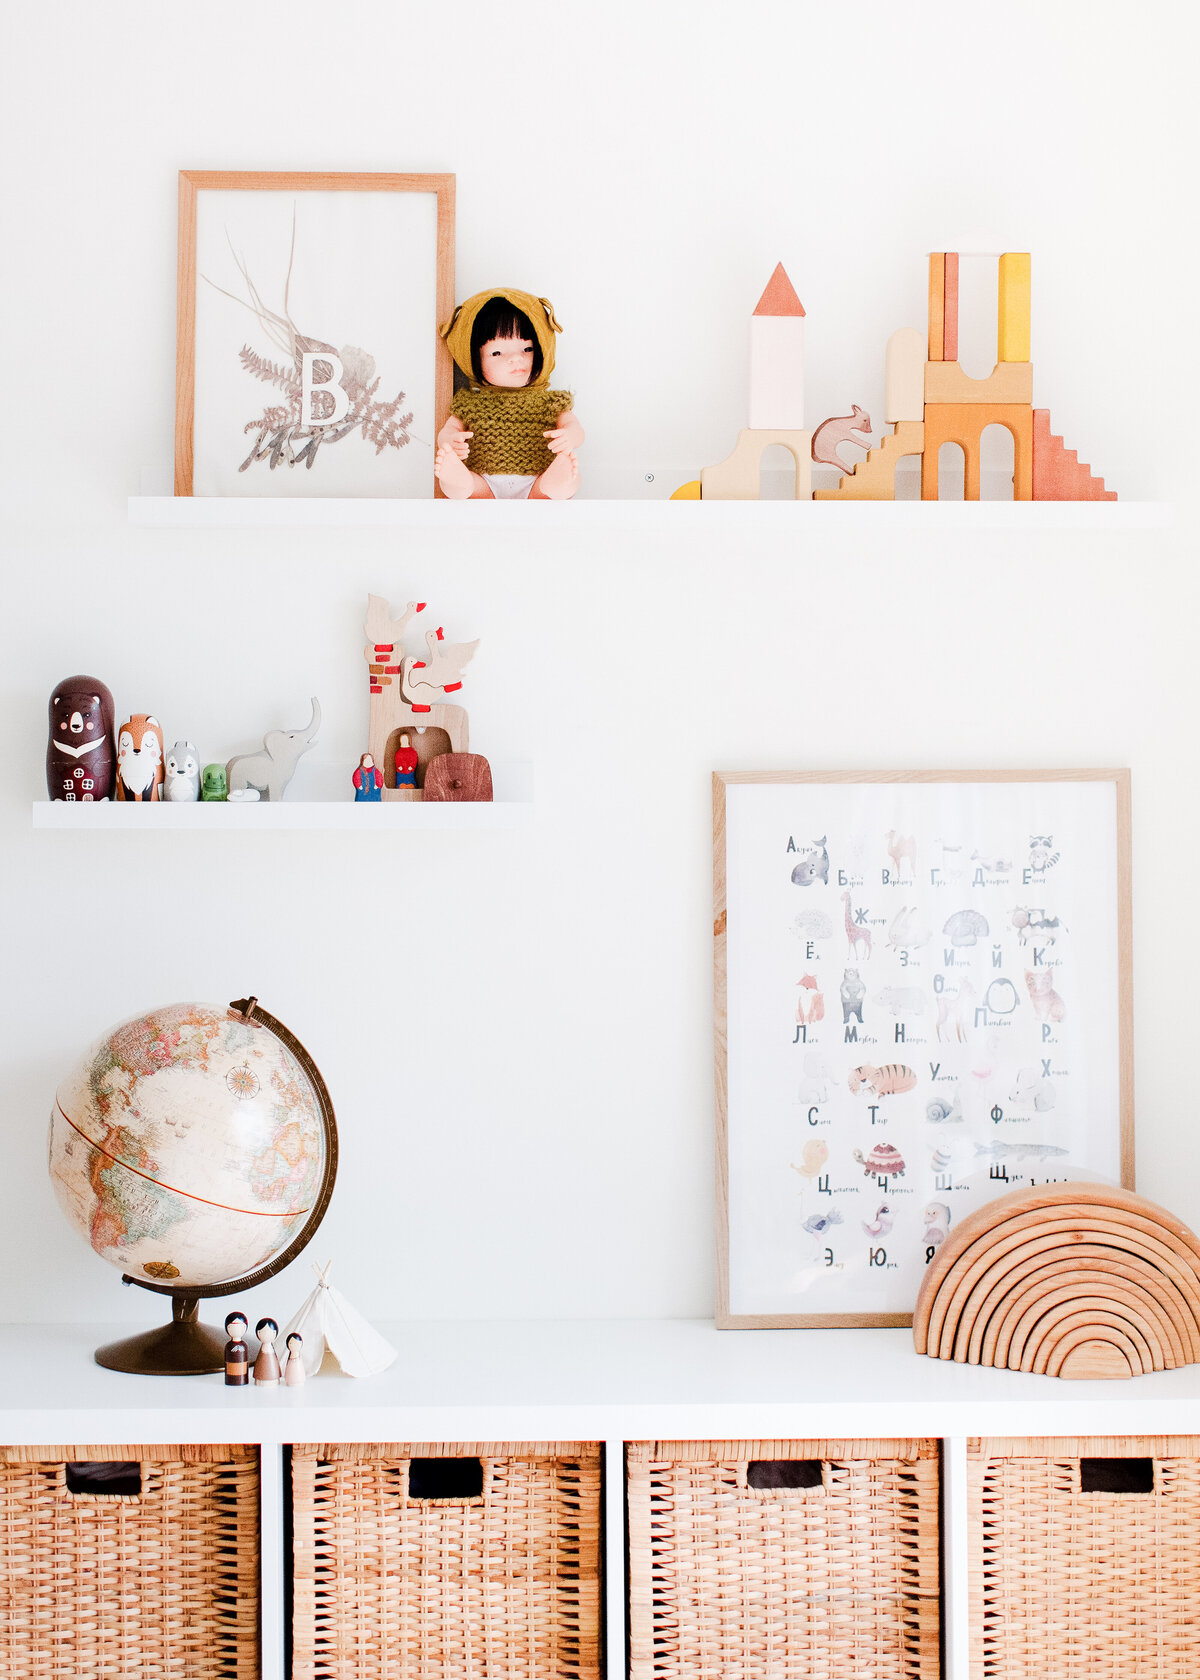 A boho sideboard with rattan baskets holds a globe against a white wall with shelves in a children's playroom.